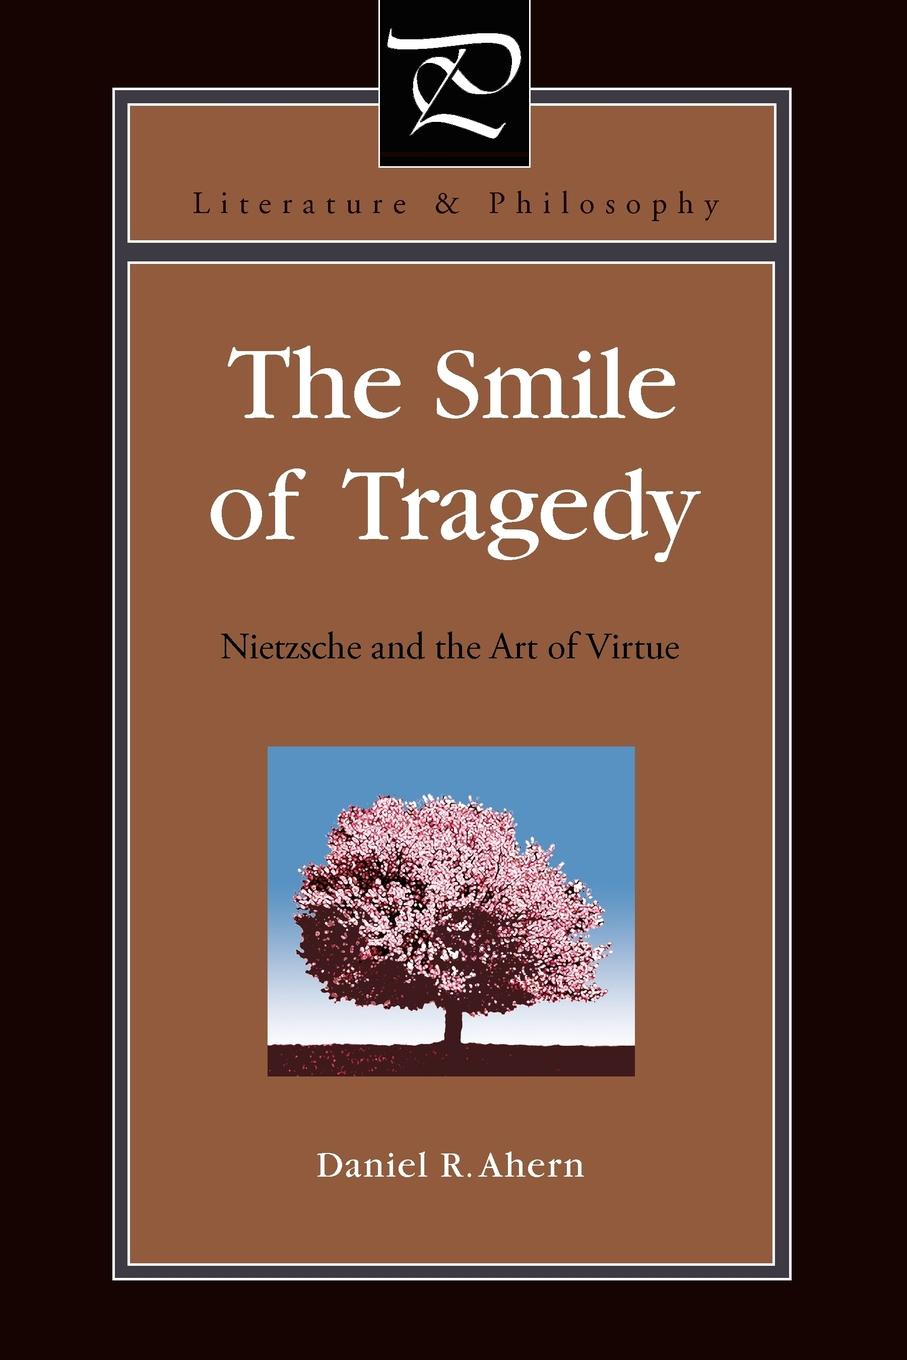 Daniel R. Ahern The Smile of Tragedy. Nietzsche and the Art of Virtue christine swanton the virtue ethics of hume and nietzsche